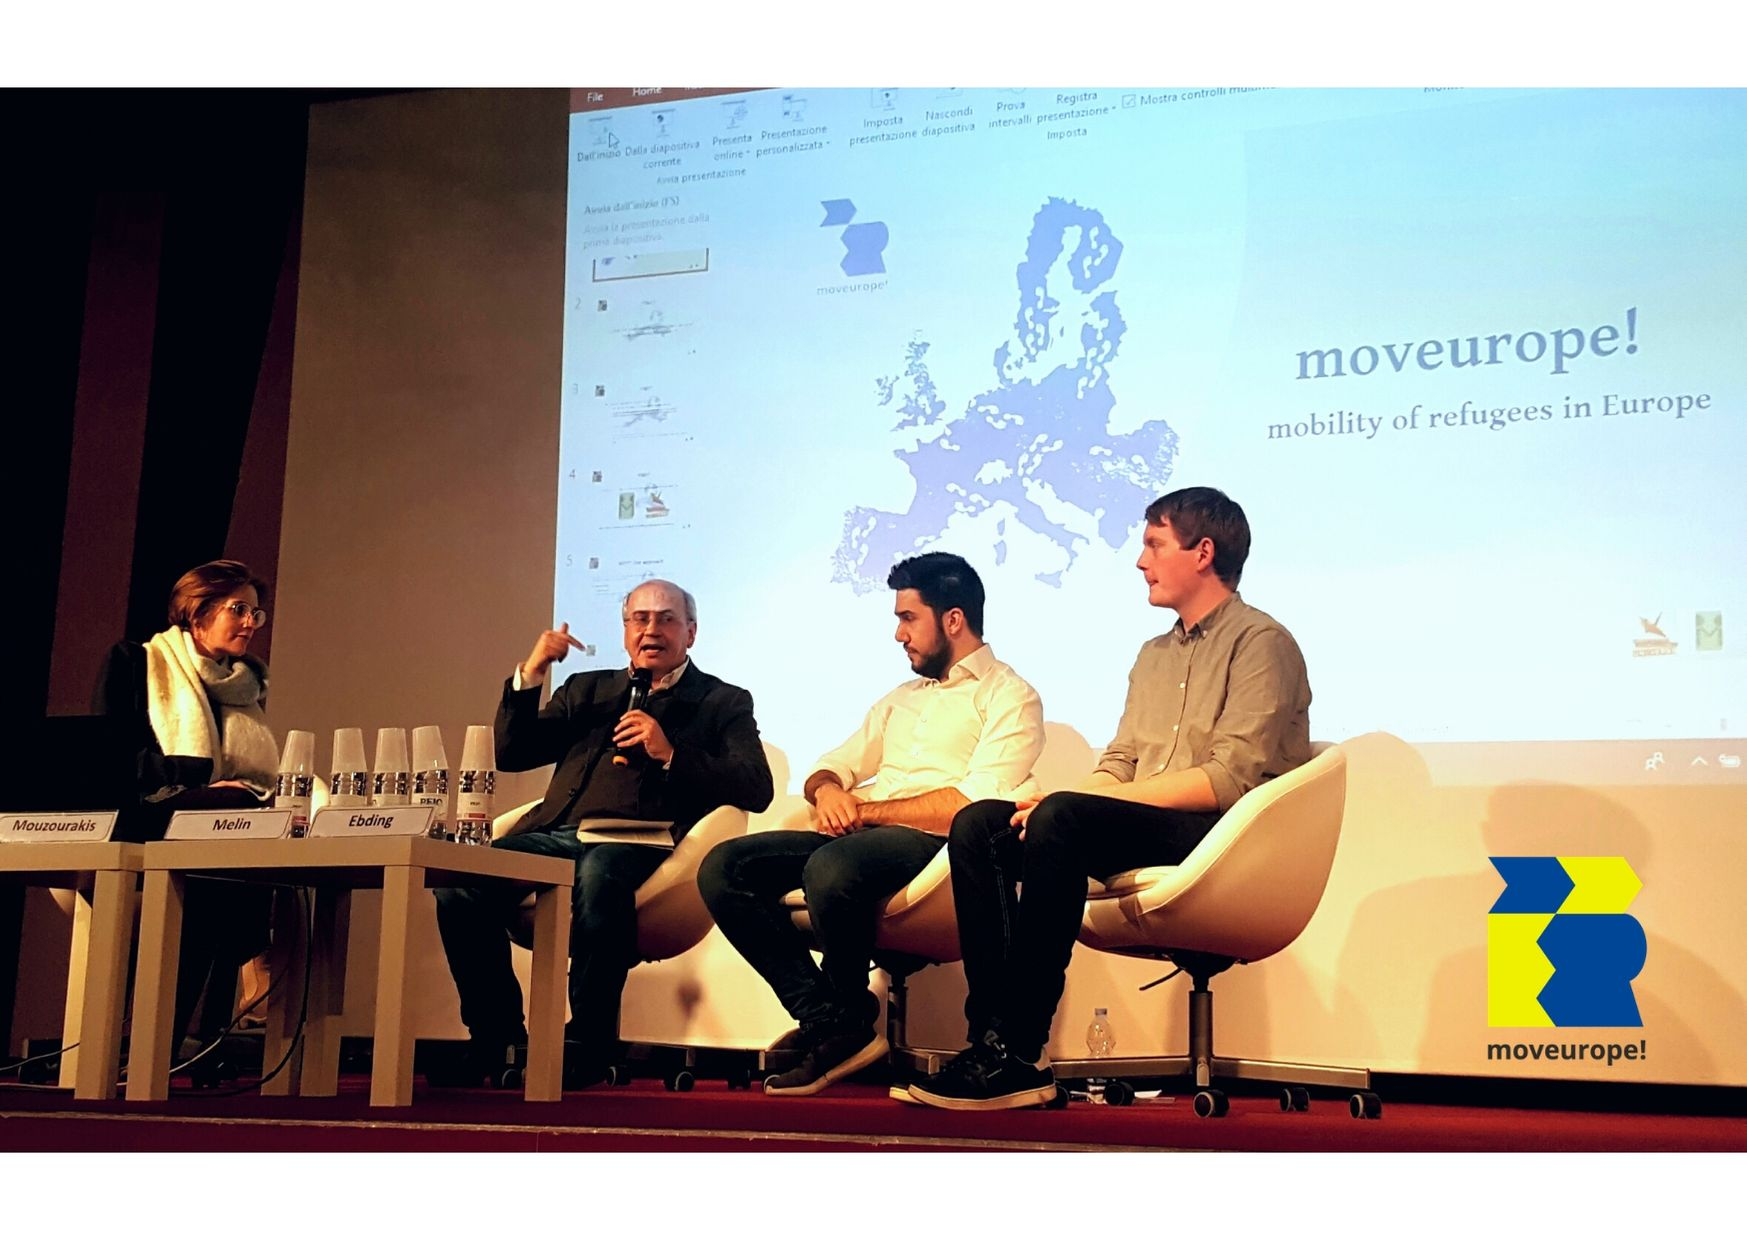 Presentation of the concept of moveurope! in Milan